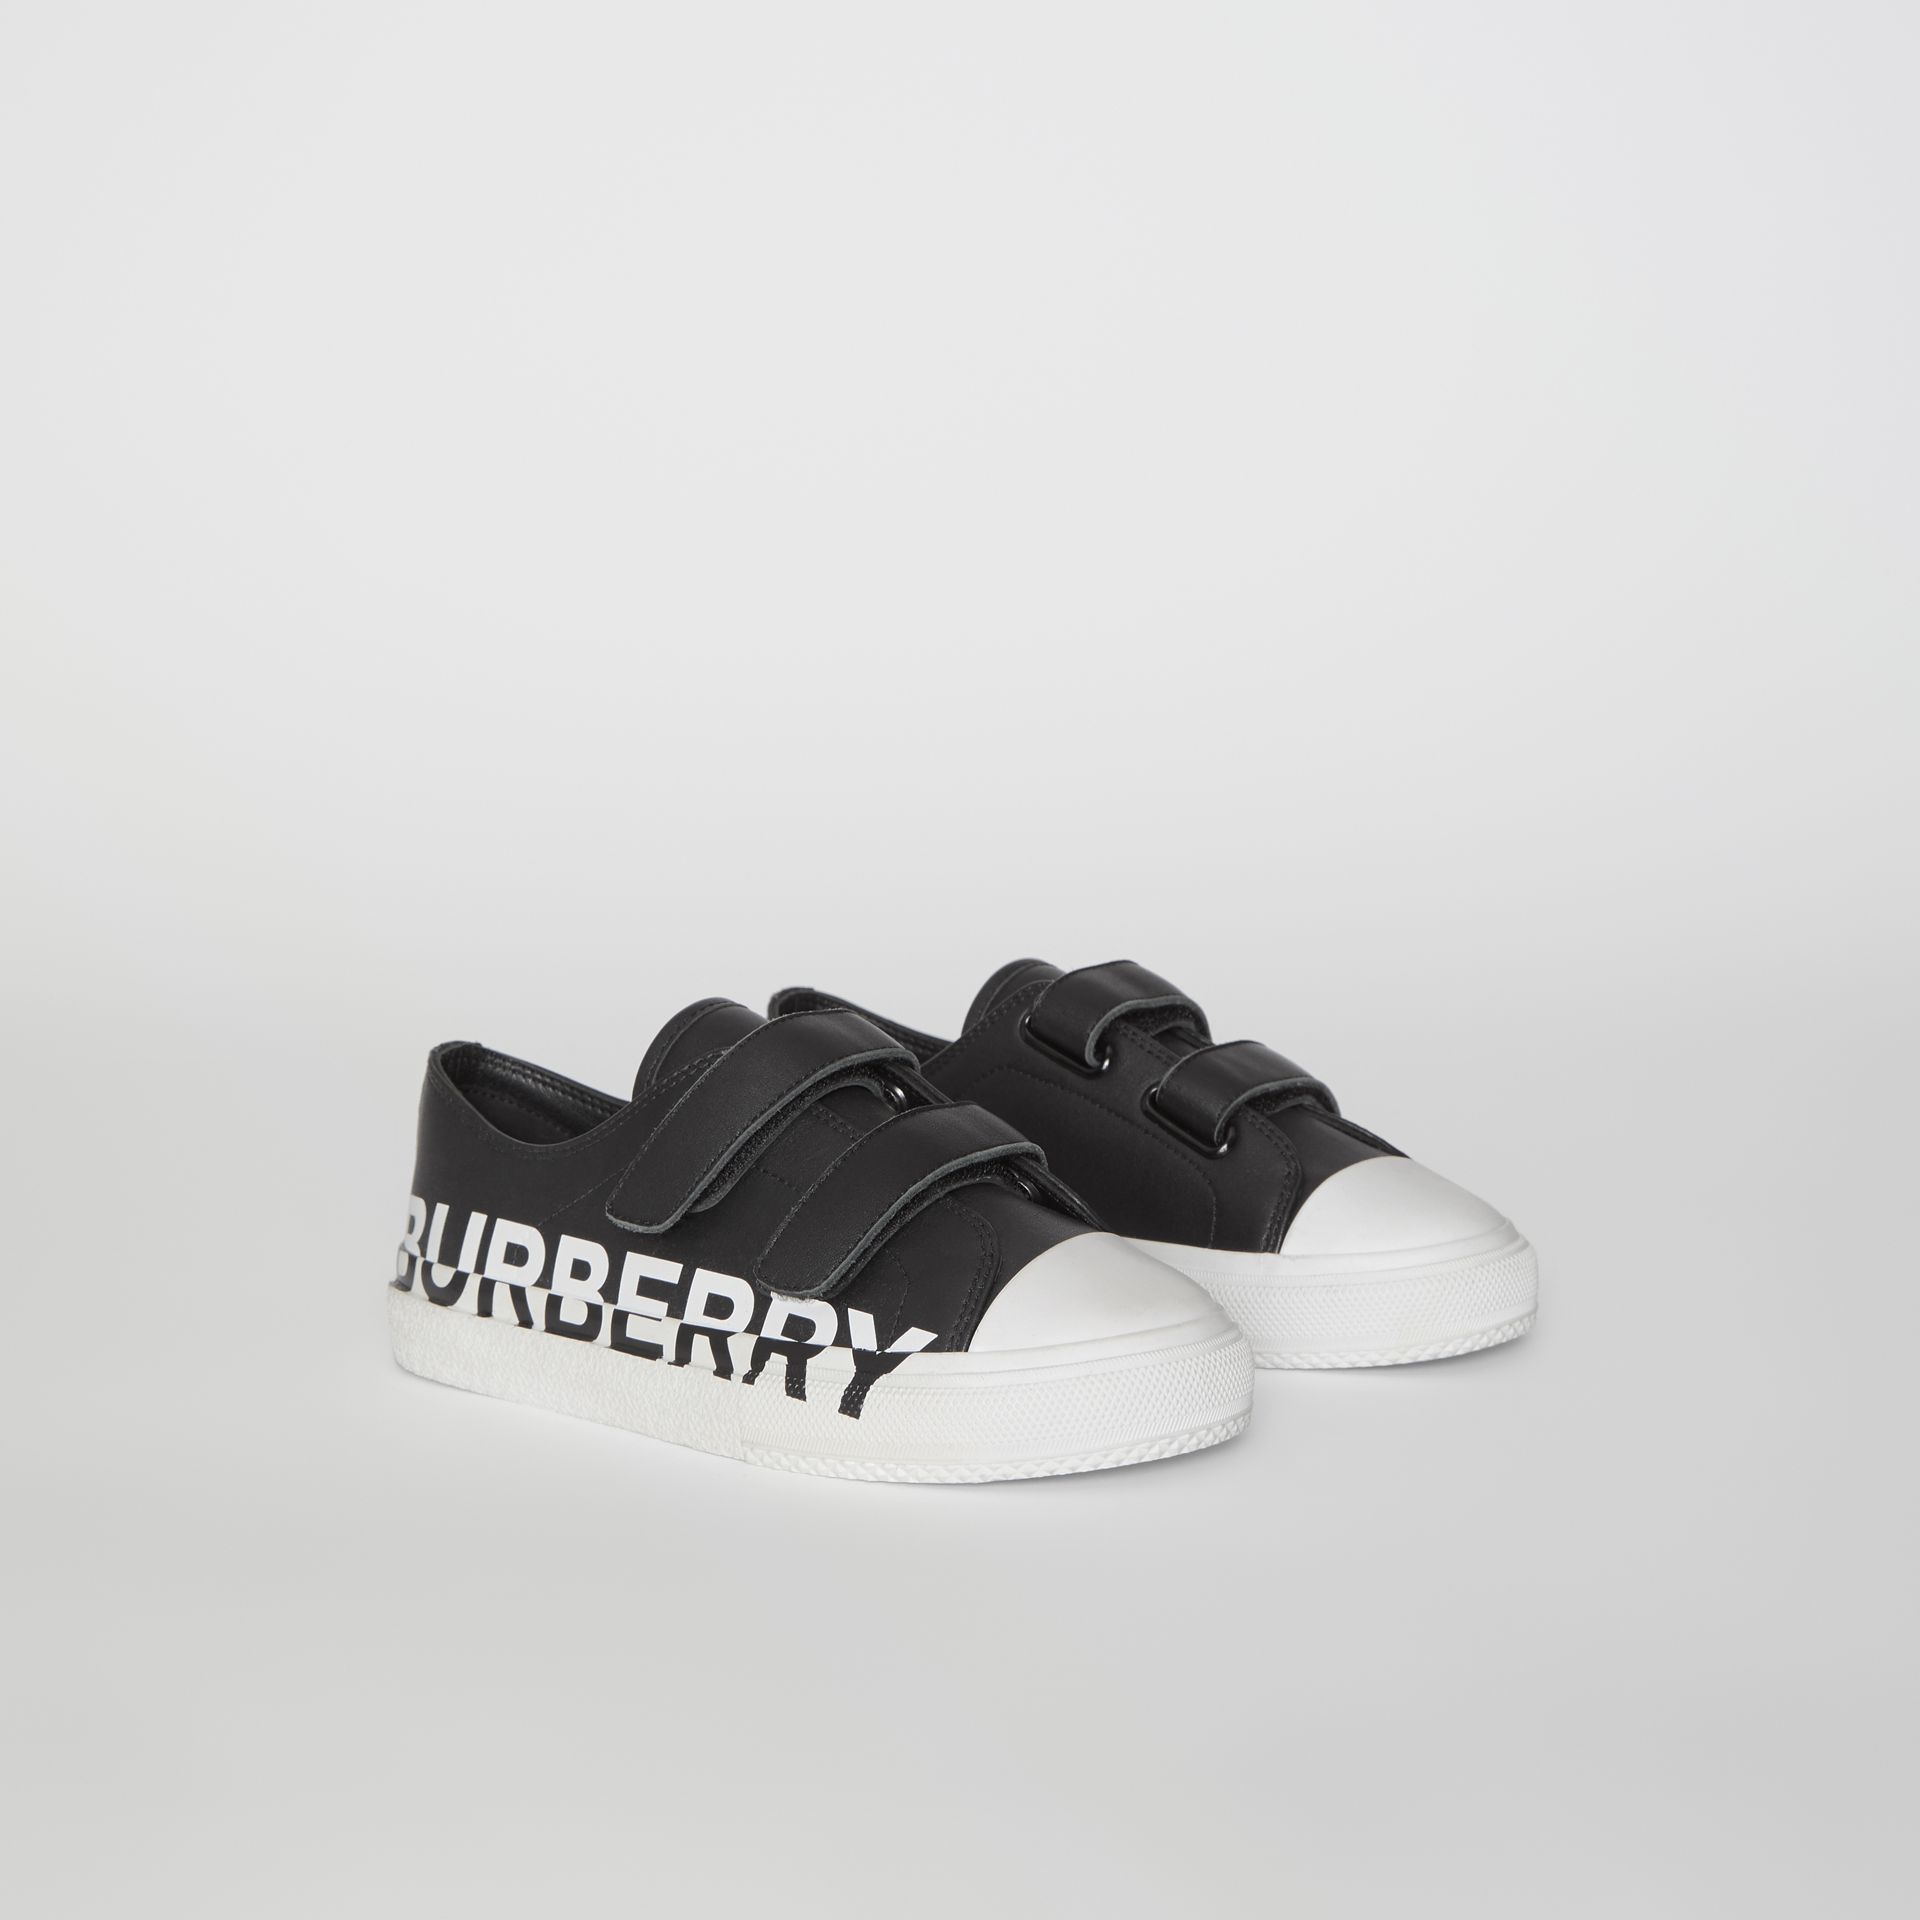 Logo Print Two-tone Leather Sneakers in Black/white - Children | Burberry Hong Kong S.A.R - gallery image 4